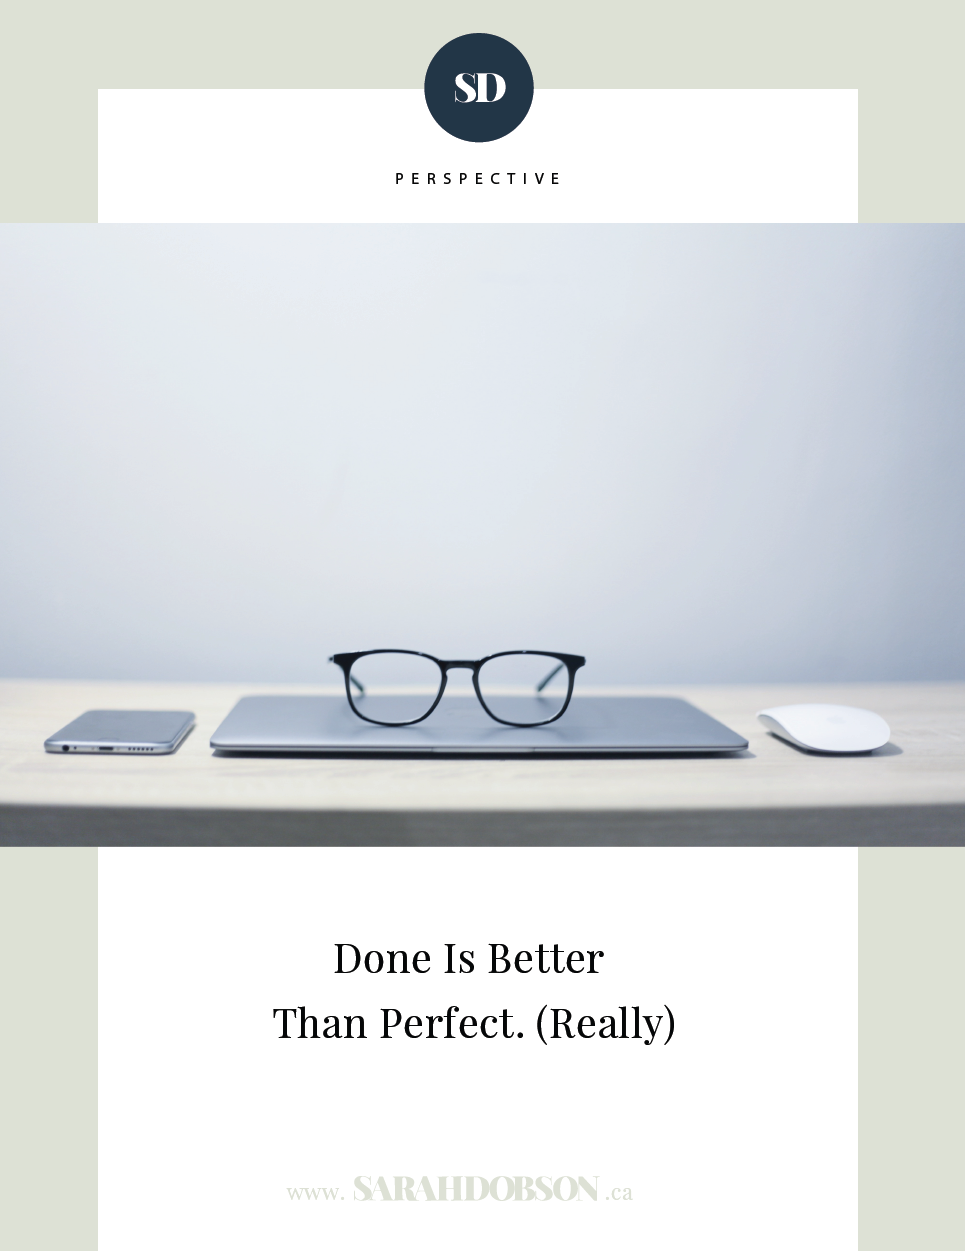 Done is better than perfect. (Really)